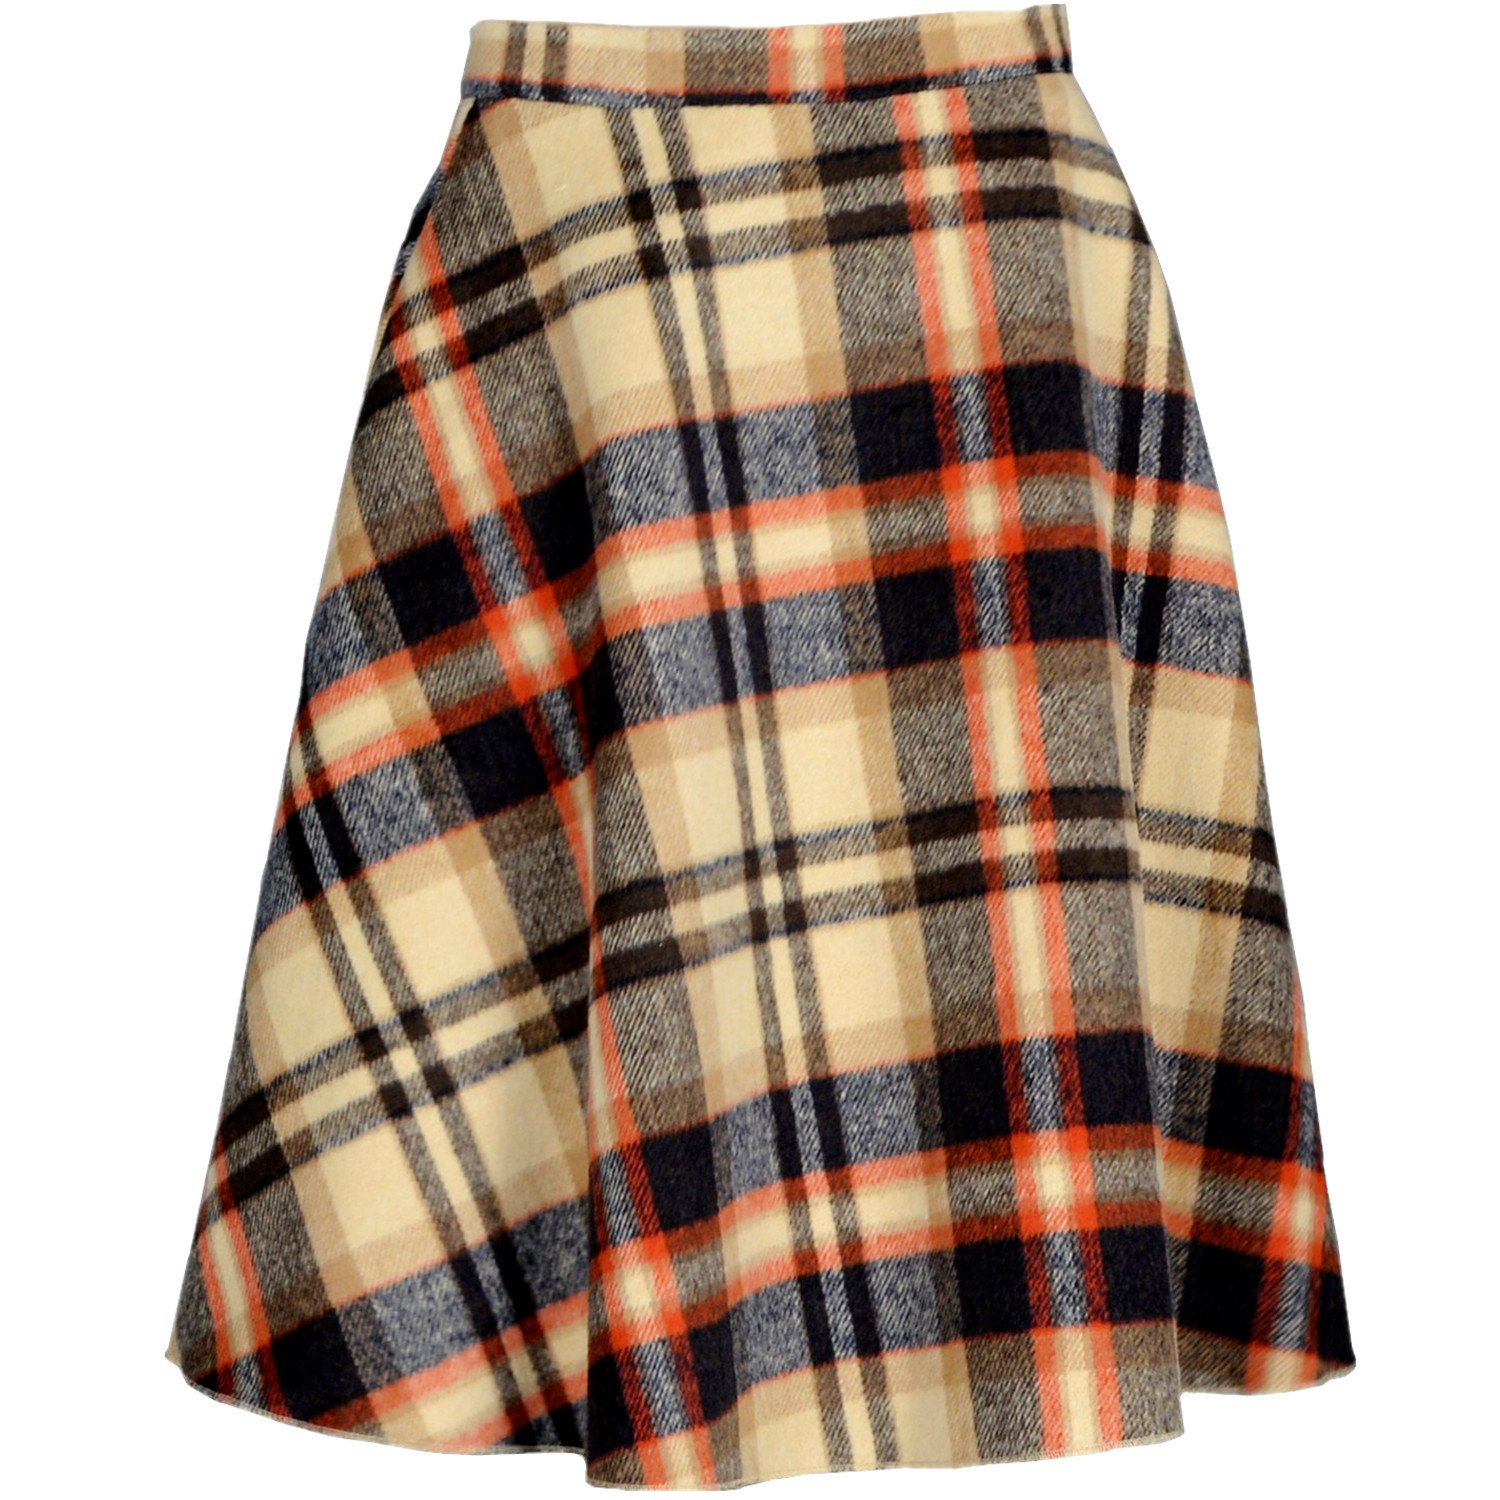 1940s Style Skirts- Vintage High Waisted Skirts YSJ Womens Wool Midi Skirt A-Line Pleated Vintage Plaid Winter Swing Skirts  AT vintagedancer.com